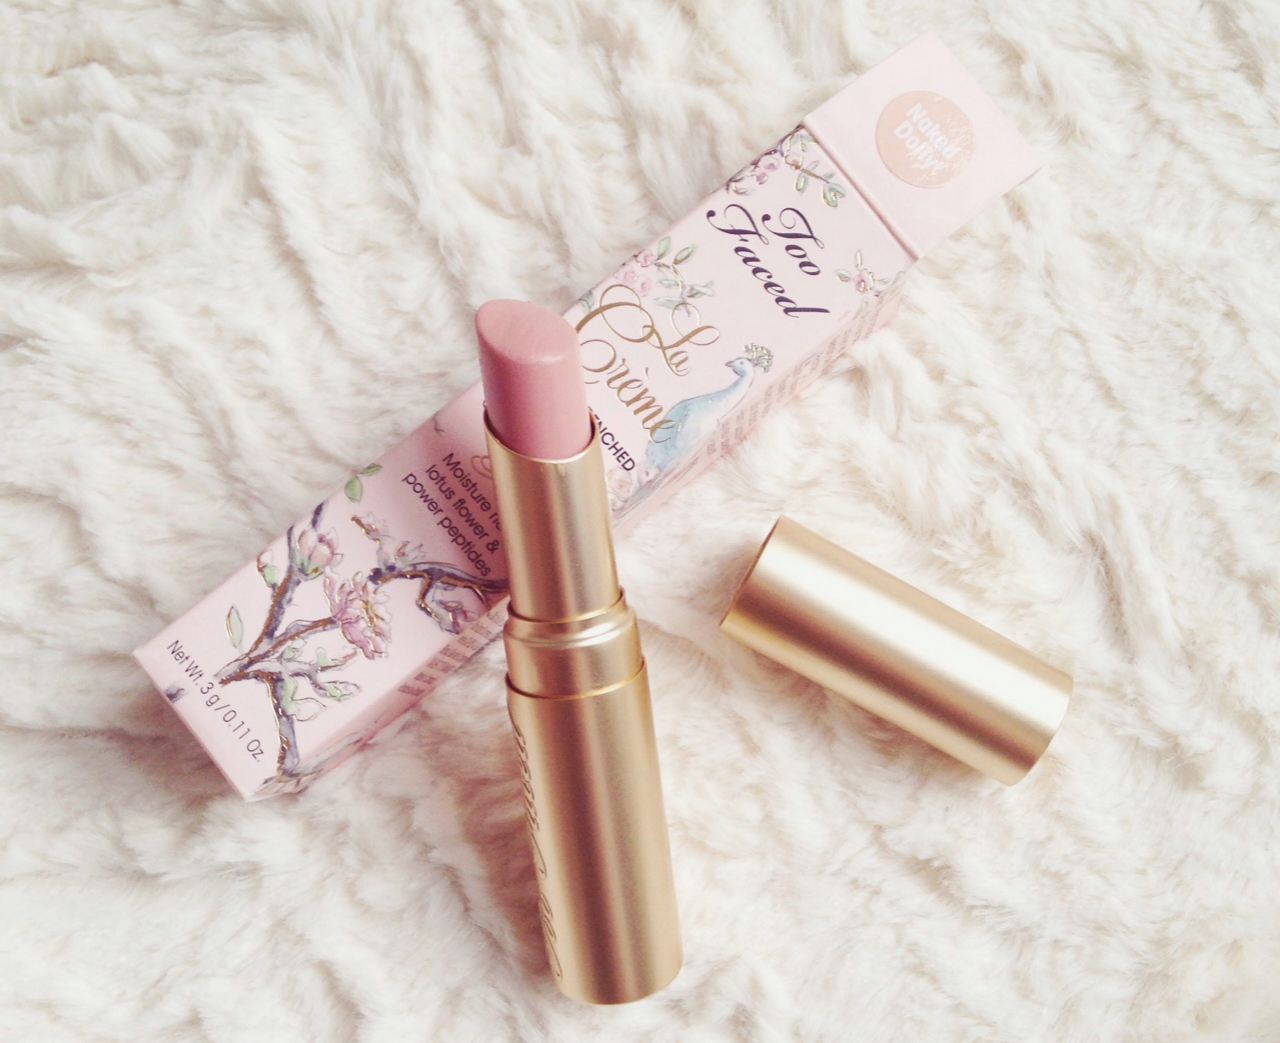 Too Faced La Crème Lip Cream 'Naked Dolly'